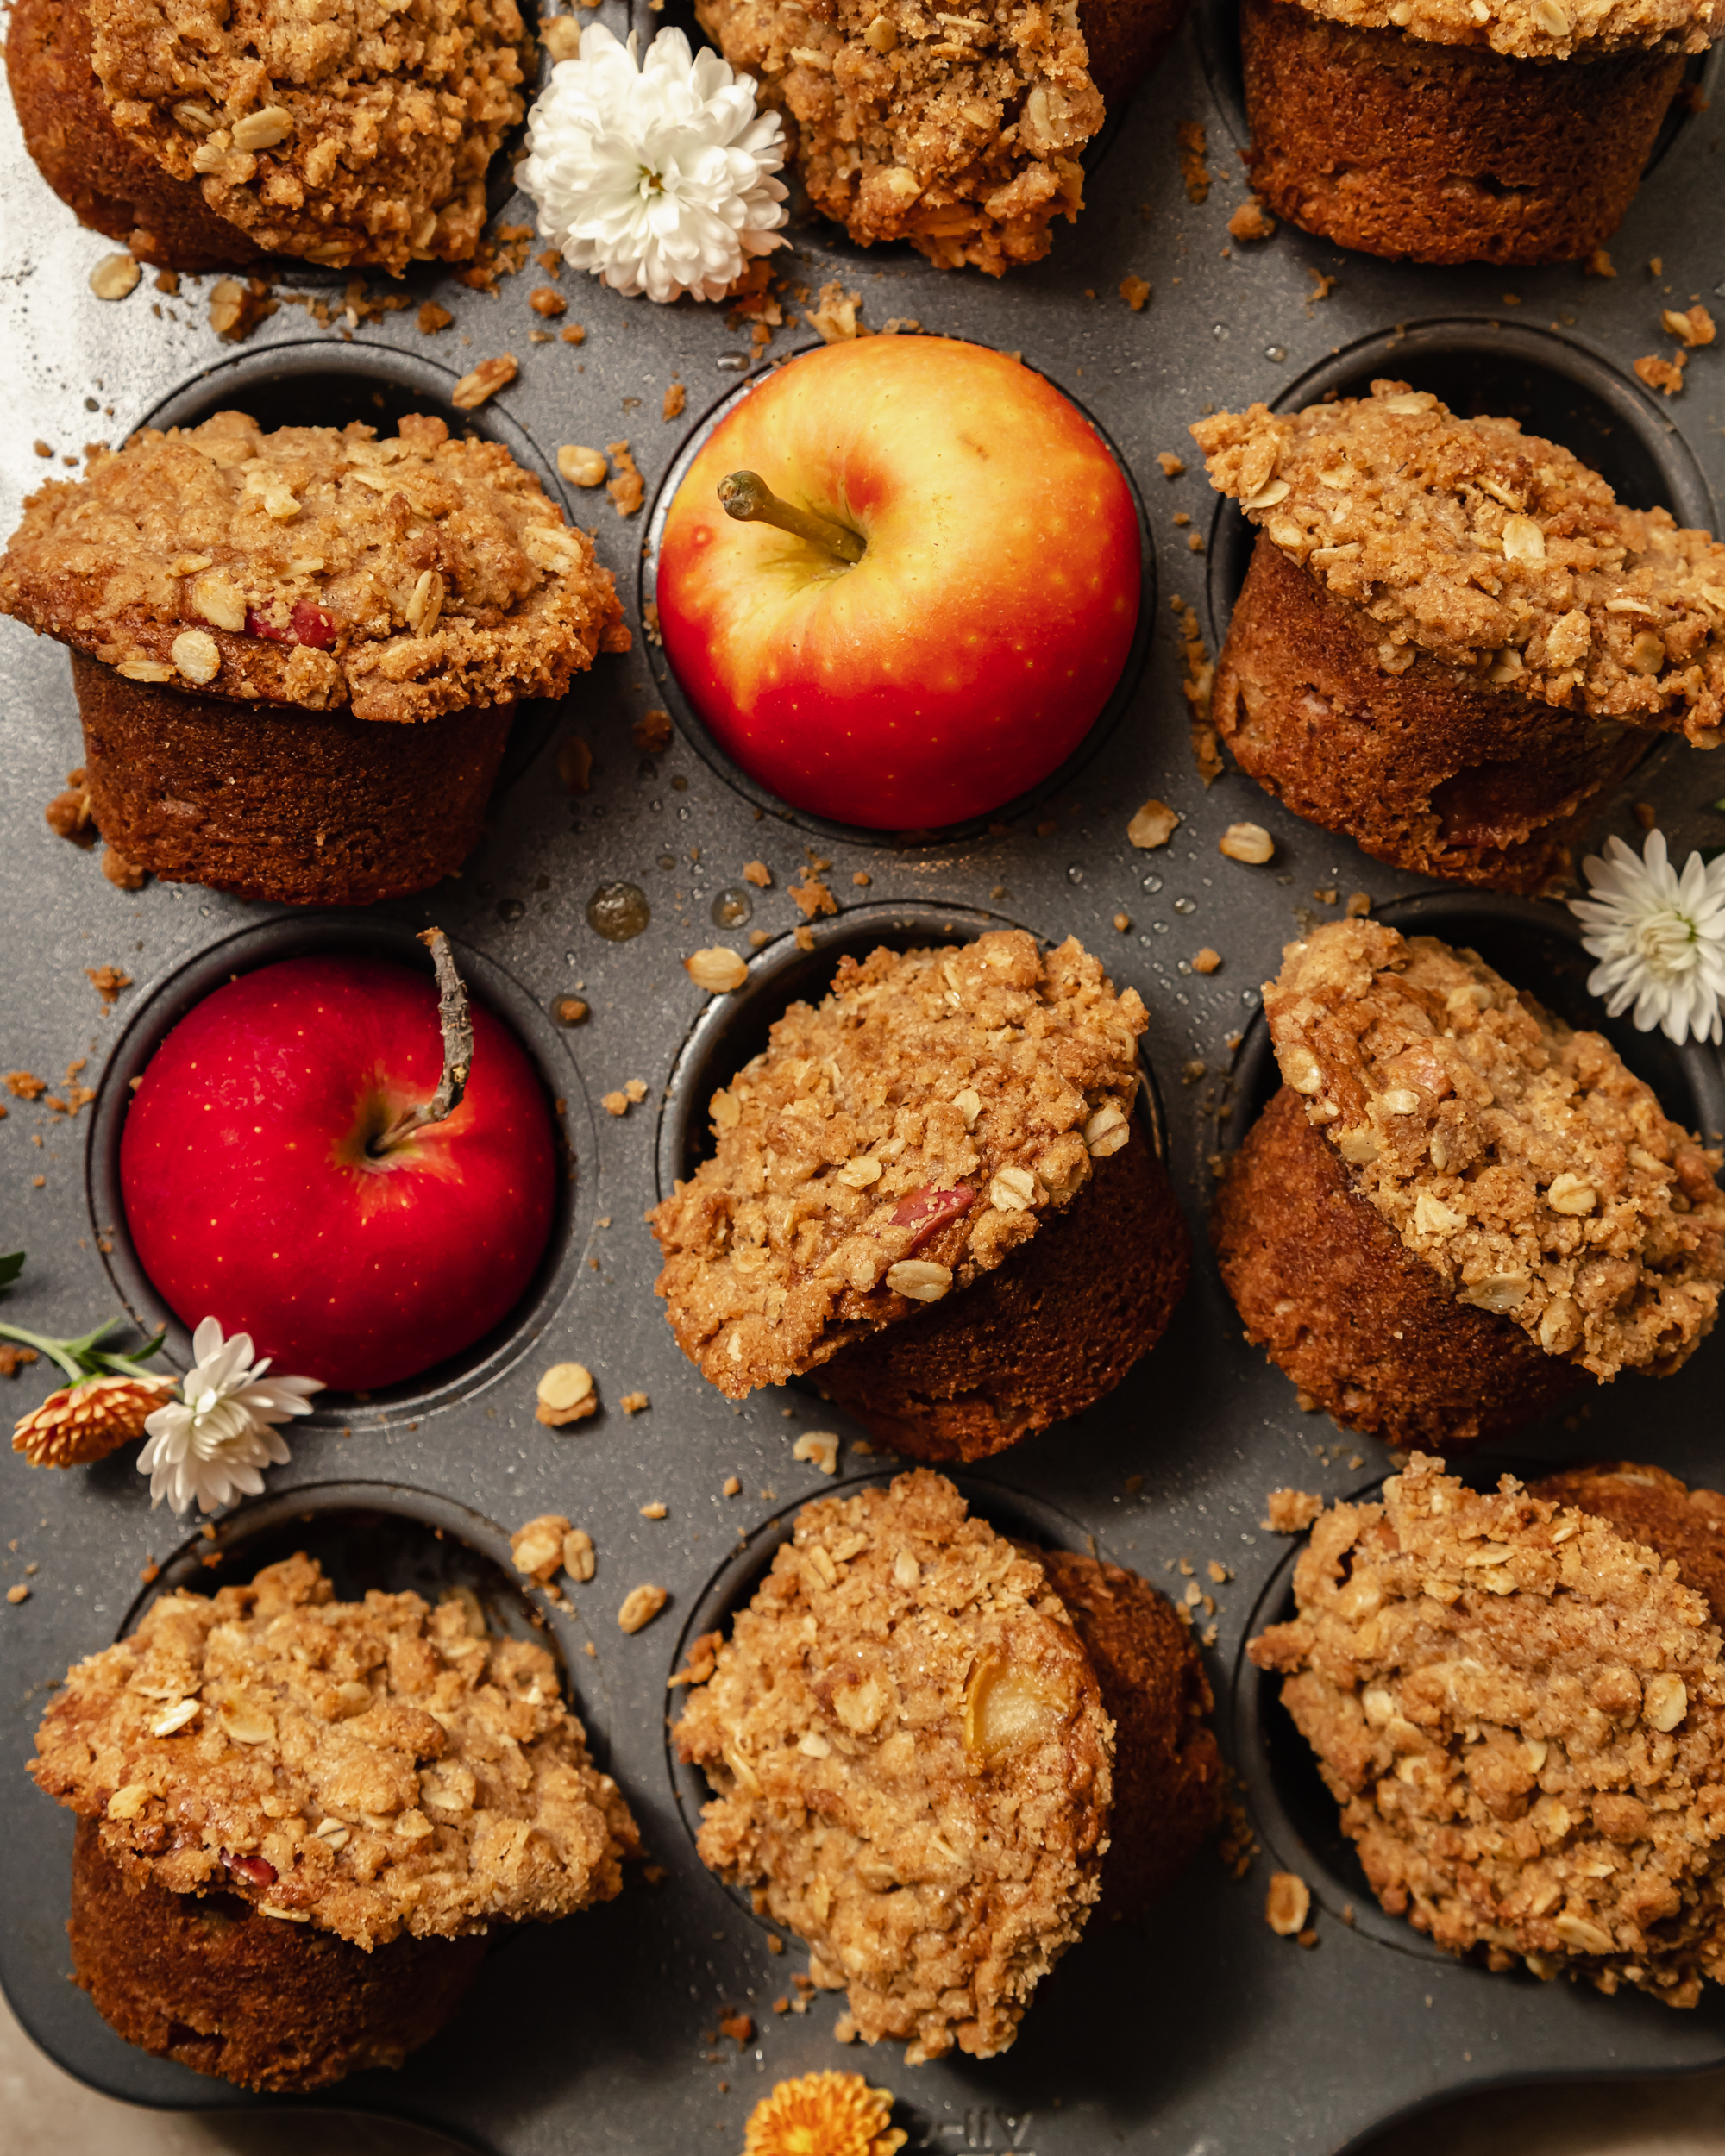 An overhead shot of baked vegan apple crisp muffins set upright in a muffin tin with apples in some of the muffin cups.